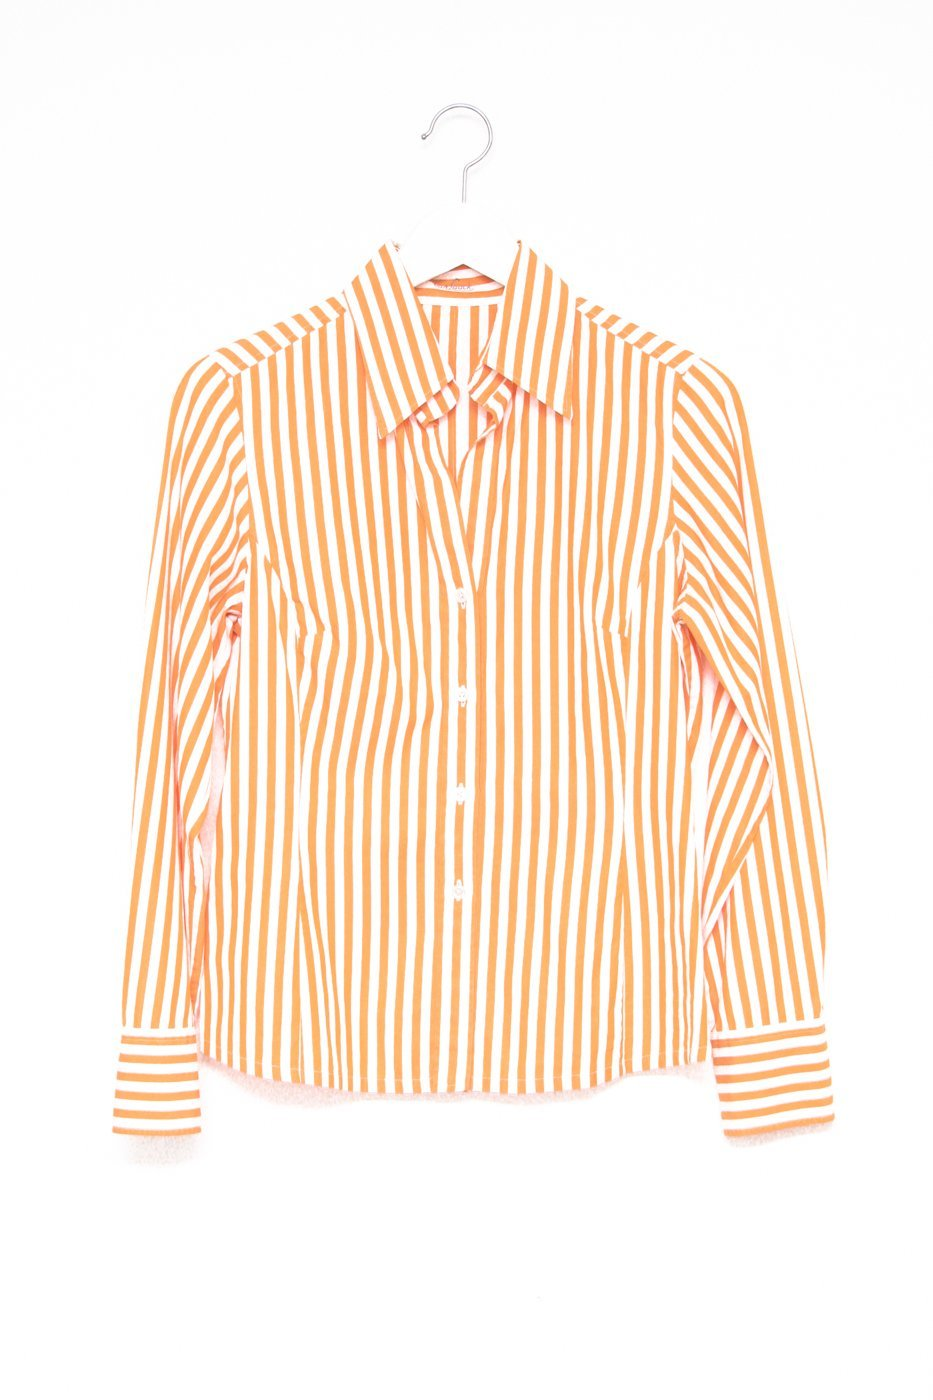 0512_STRIPED ORANGE VINTAGE SHIRT